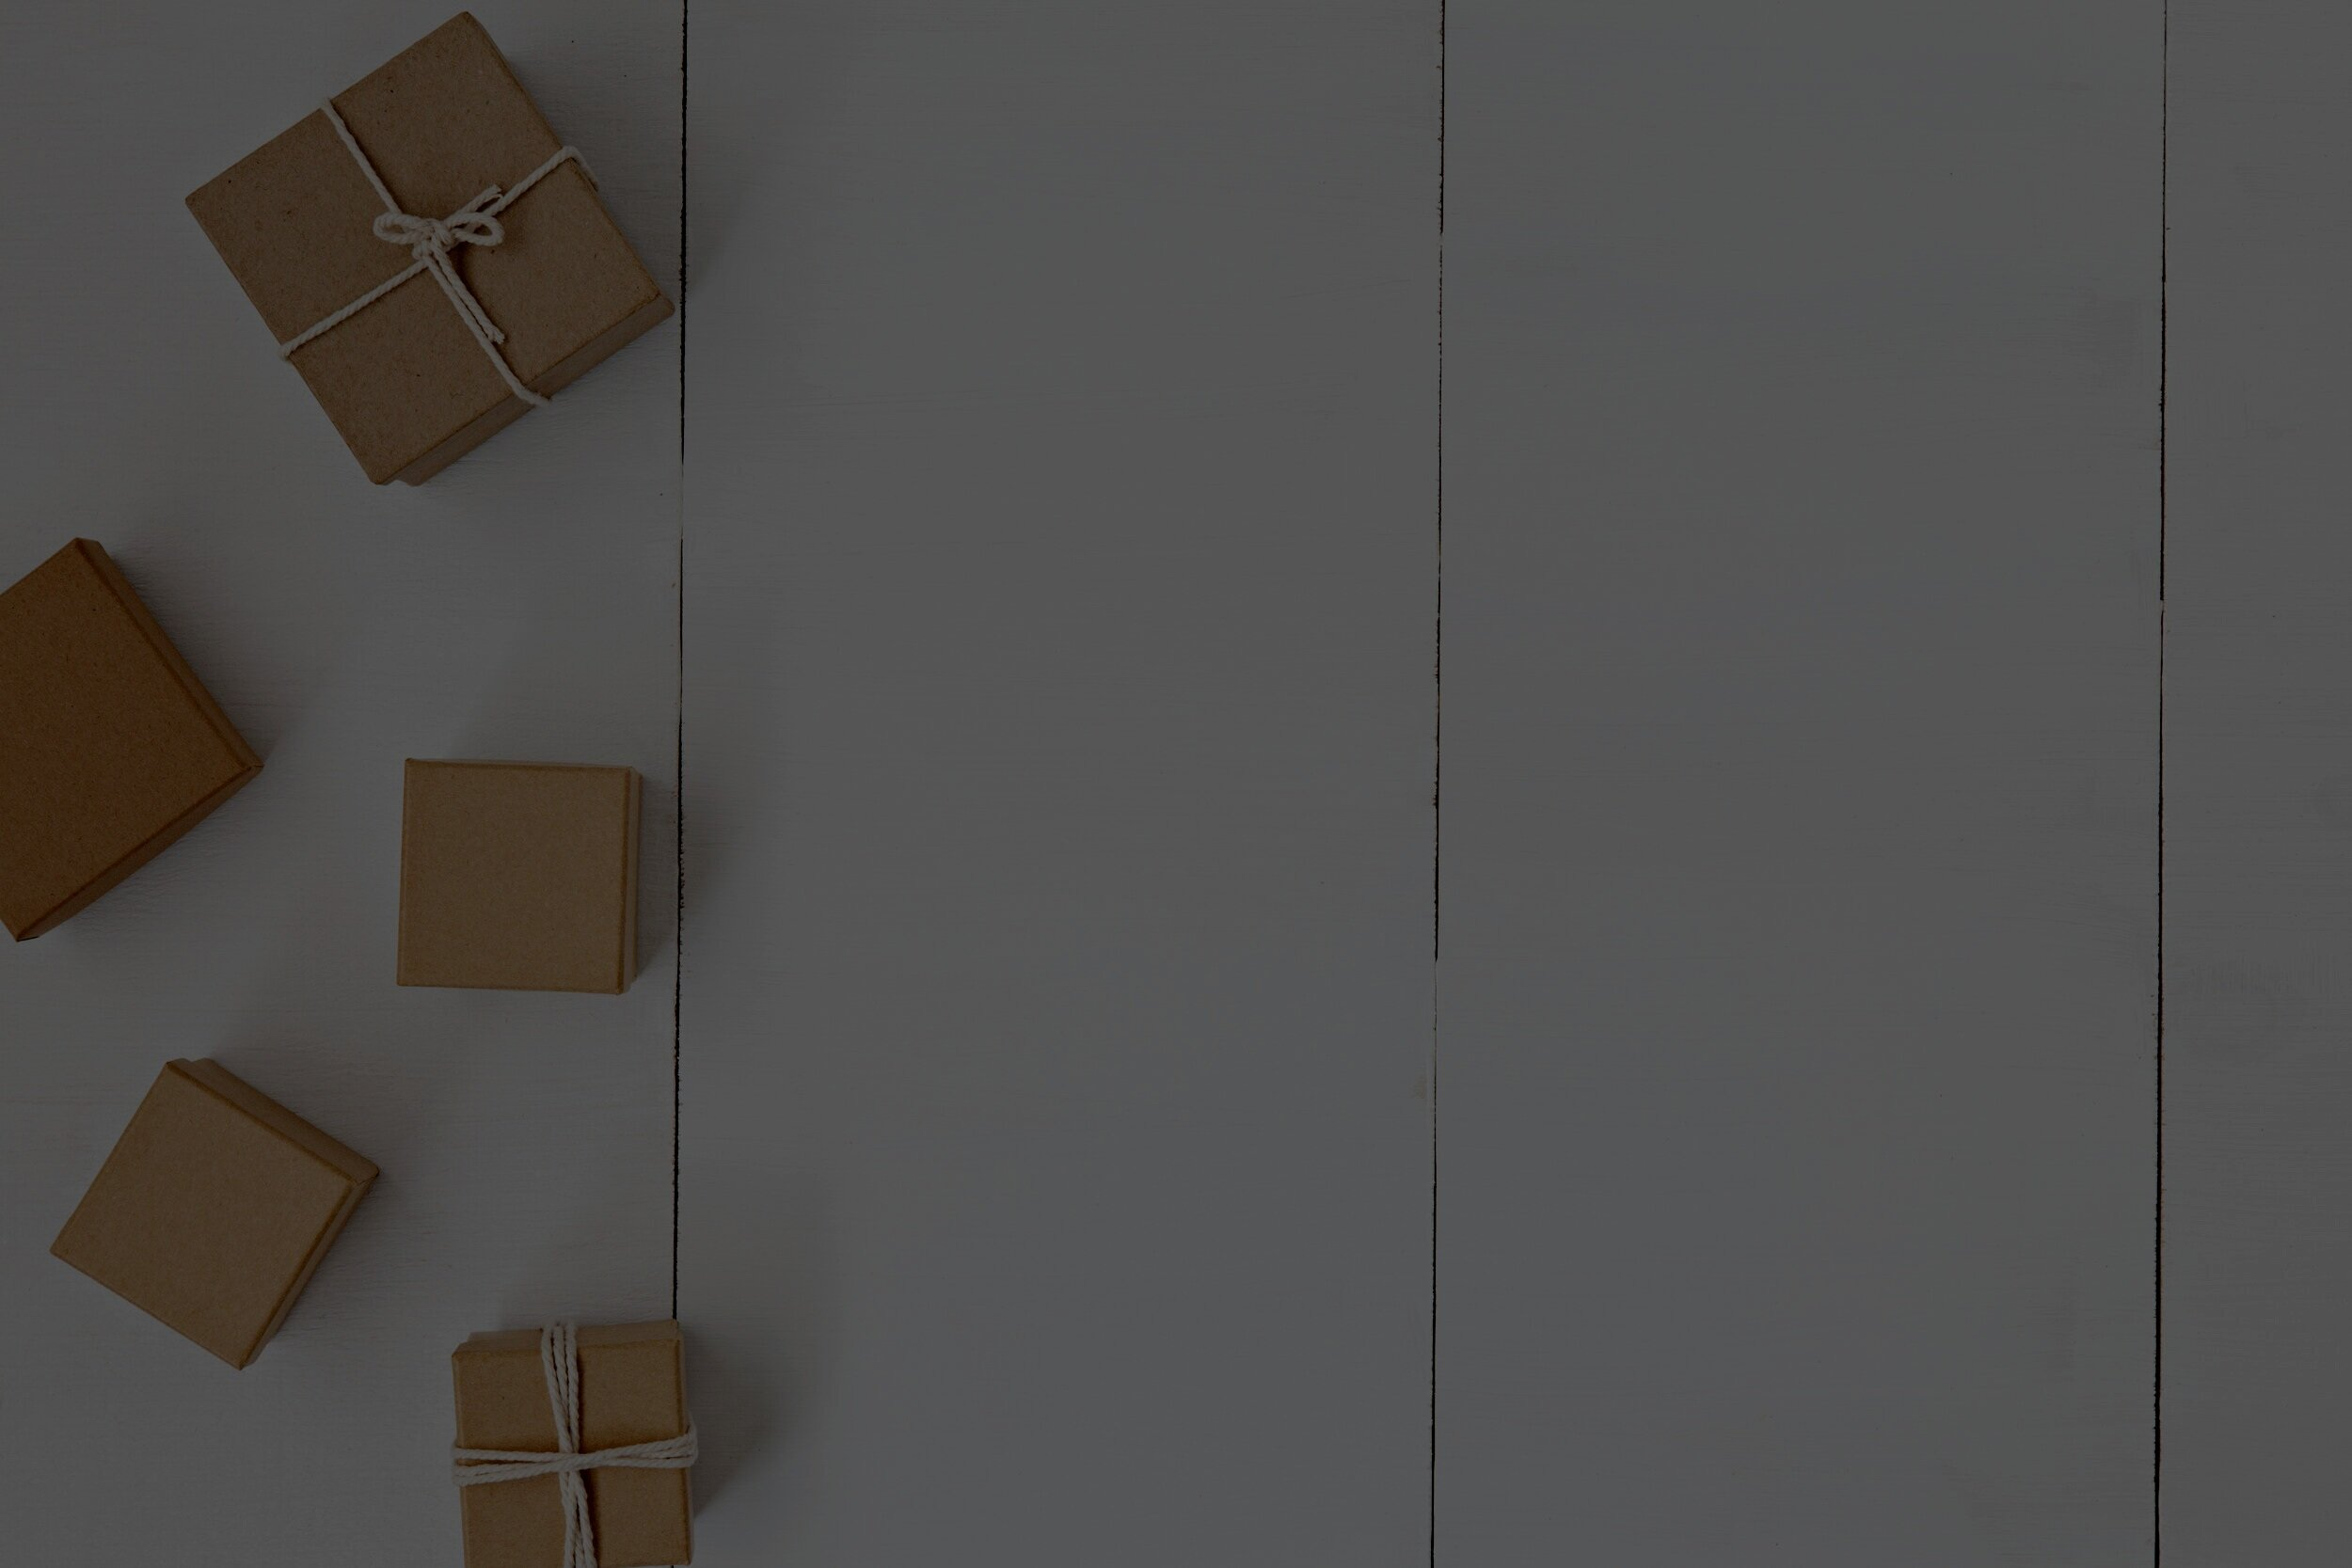 Fast Shipping Times - We've teamed up with the largest authorized UPS reseller in the country to bring you the best price and the quickest and most reliable shipping ever. We also have the capabilities to blind drop ship directly to your customer so you don't have to worry about it getting there.